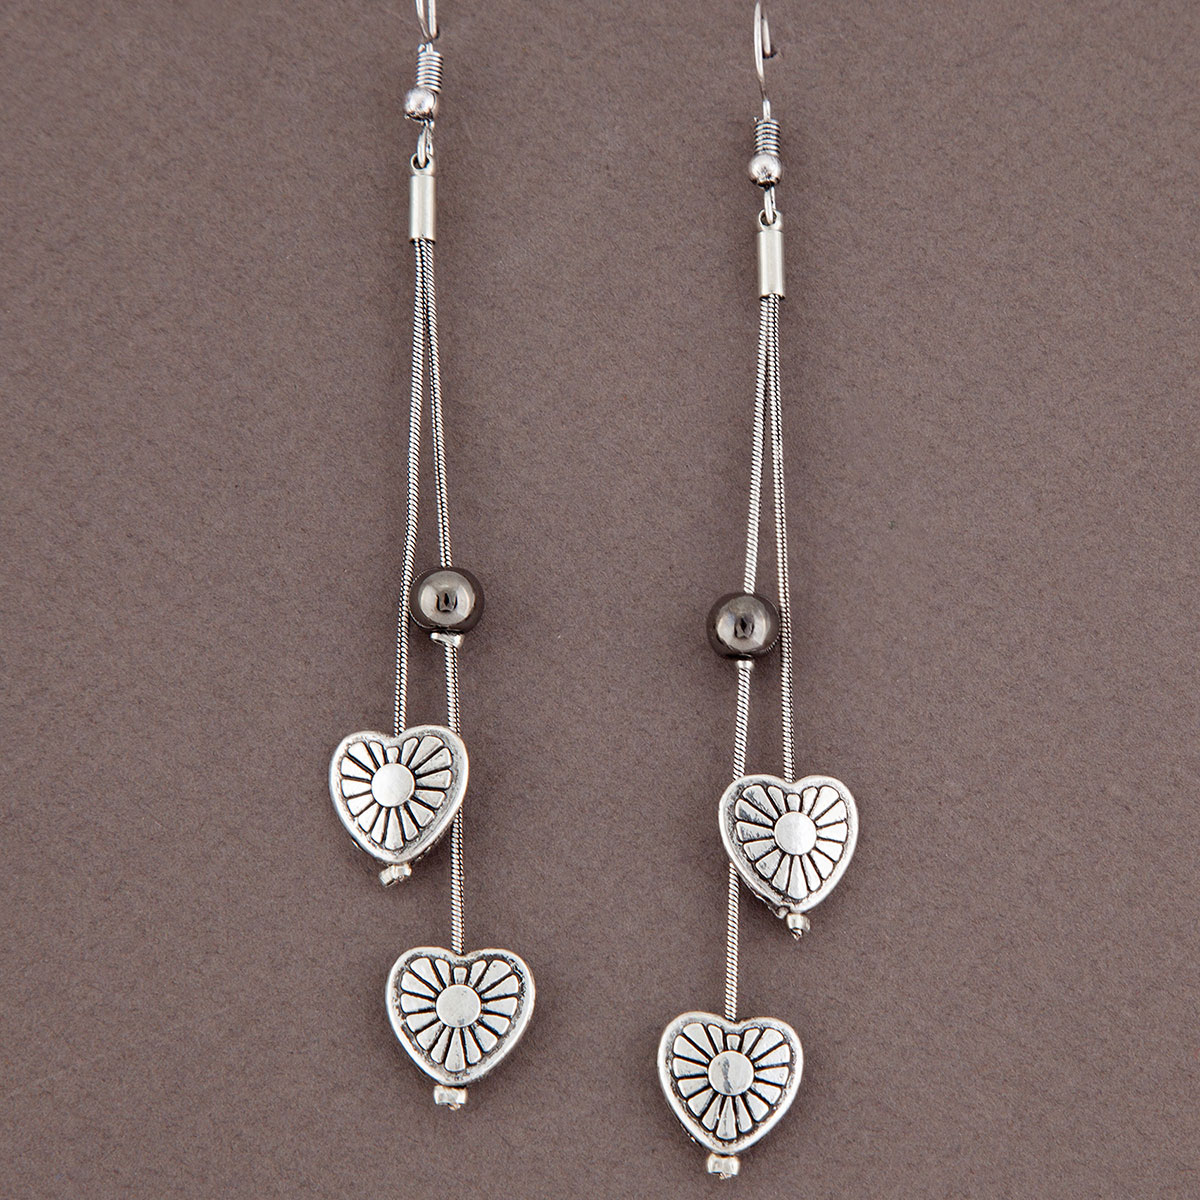 Antique Silver Mini Hearts with Beads French Wire Earrings